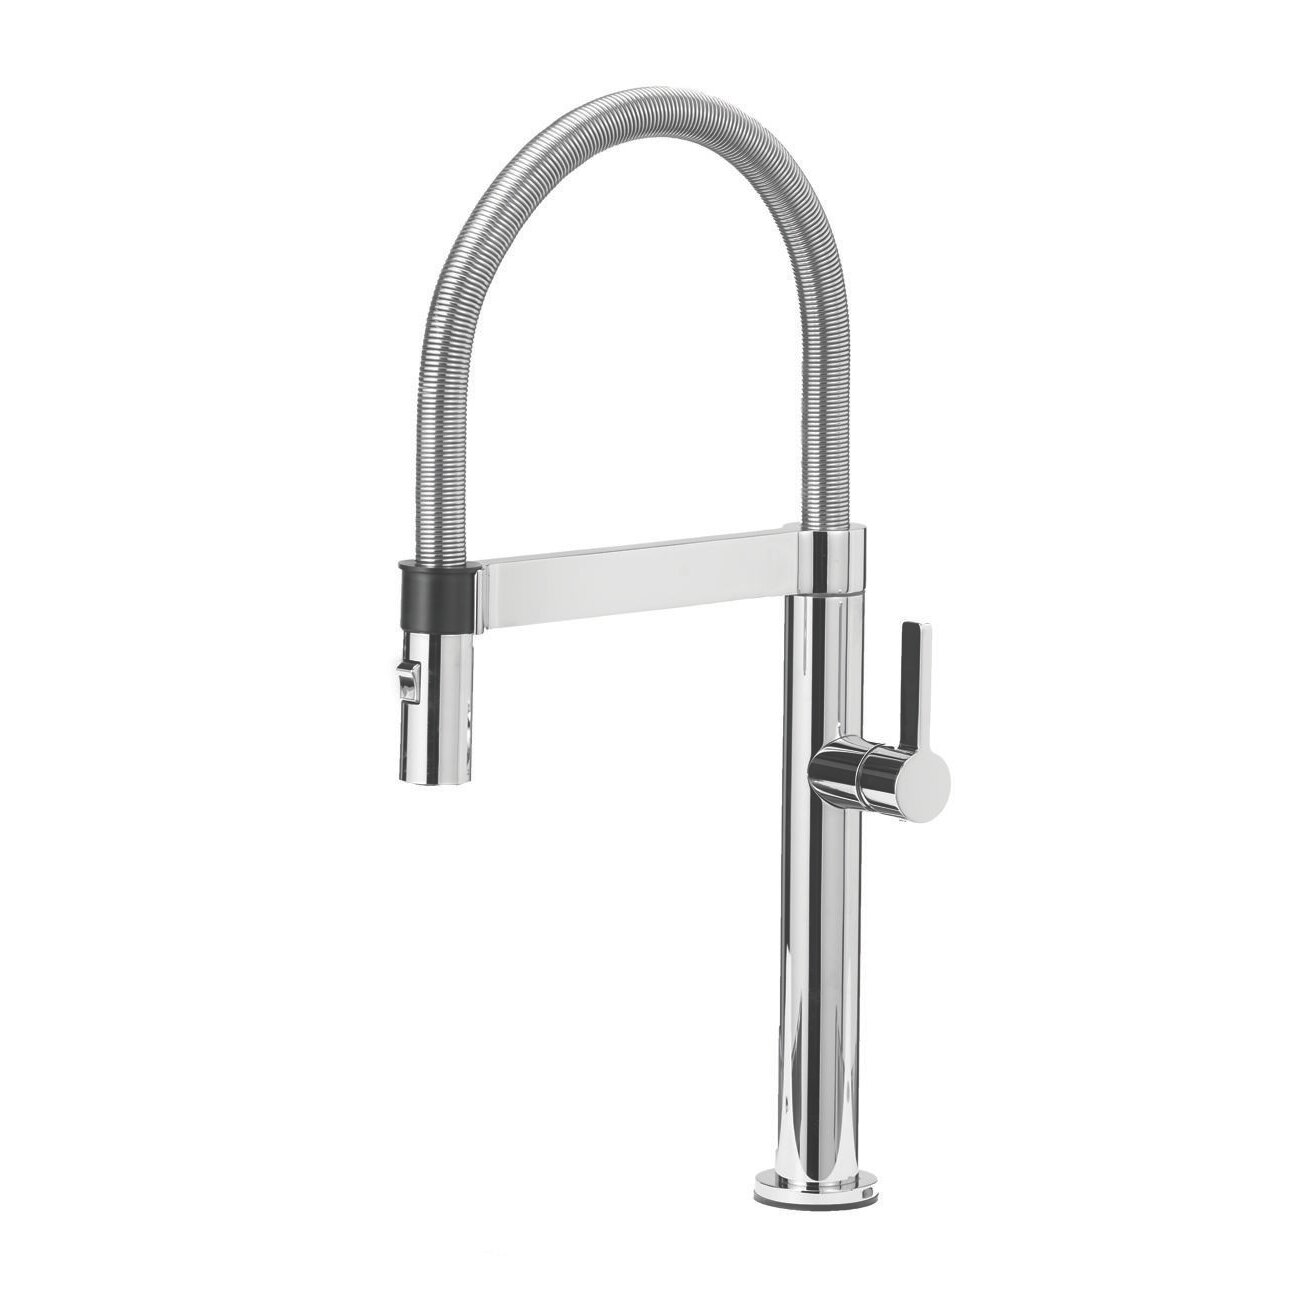 Deck Mount Kitchen Faucet Blanco Culina Single Handle Deck Mounted Kitchen Faucet With Pull